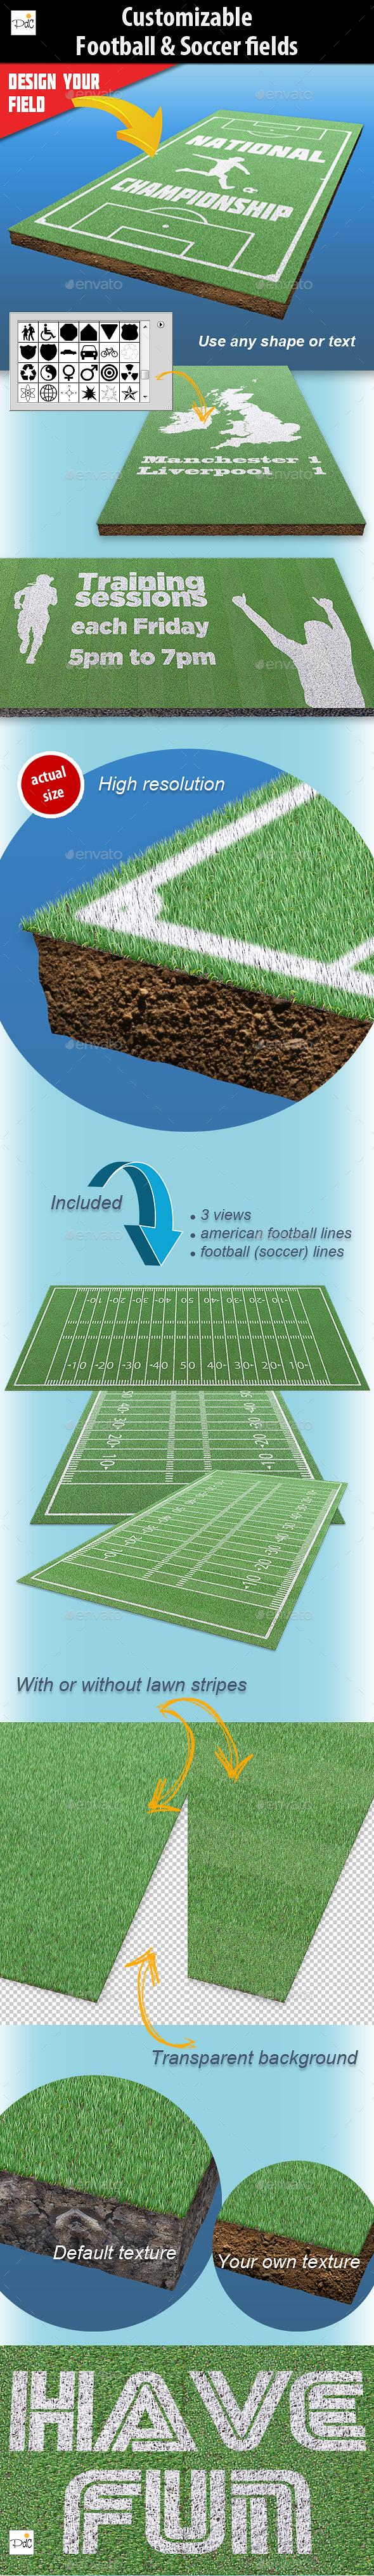 Customizable football & soccer fields - Miscellaneous Print